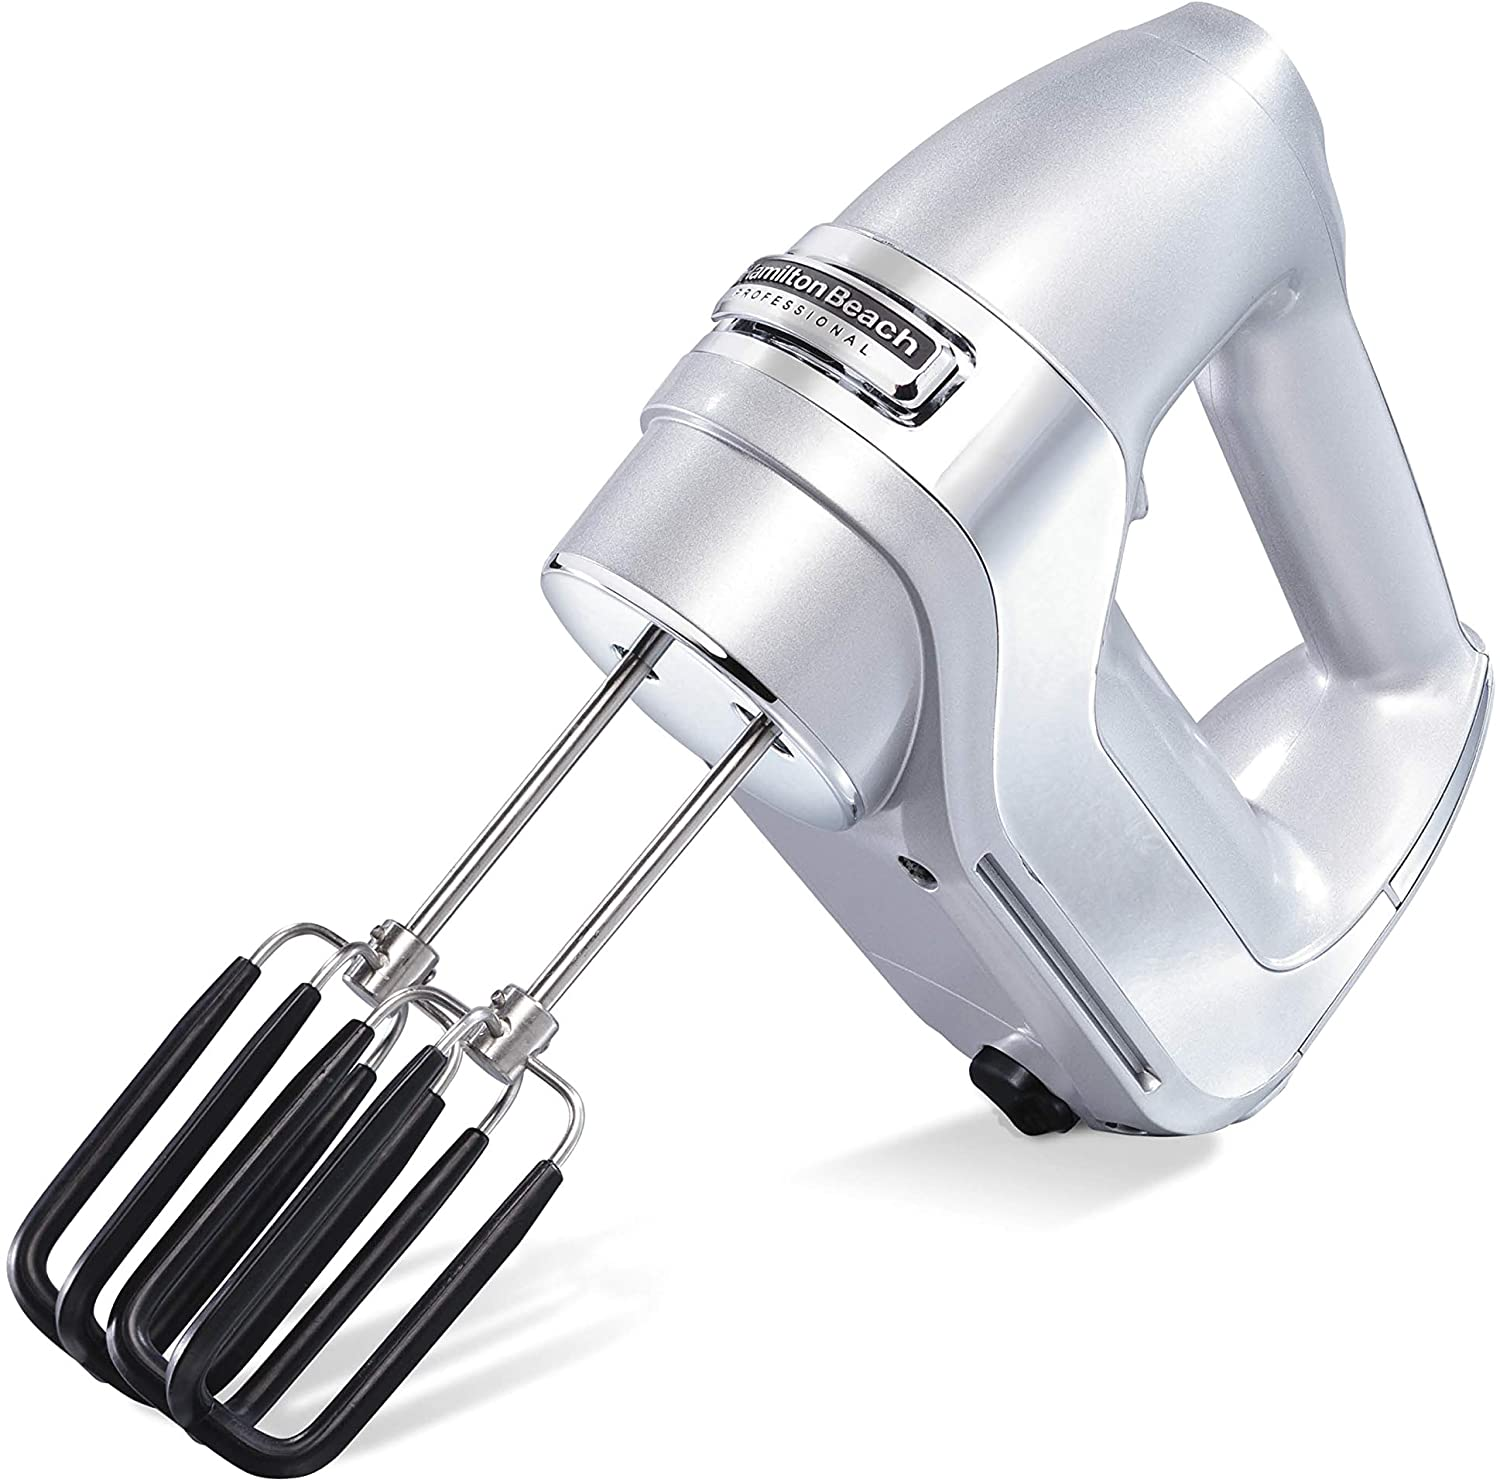 Hamilton Beach Professional 7-Speed Electric Hand Mixer with Snap-On Storage Case, SoftScrape Beaters, Whisk, Dough Hooks, Silver (62657)